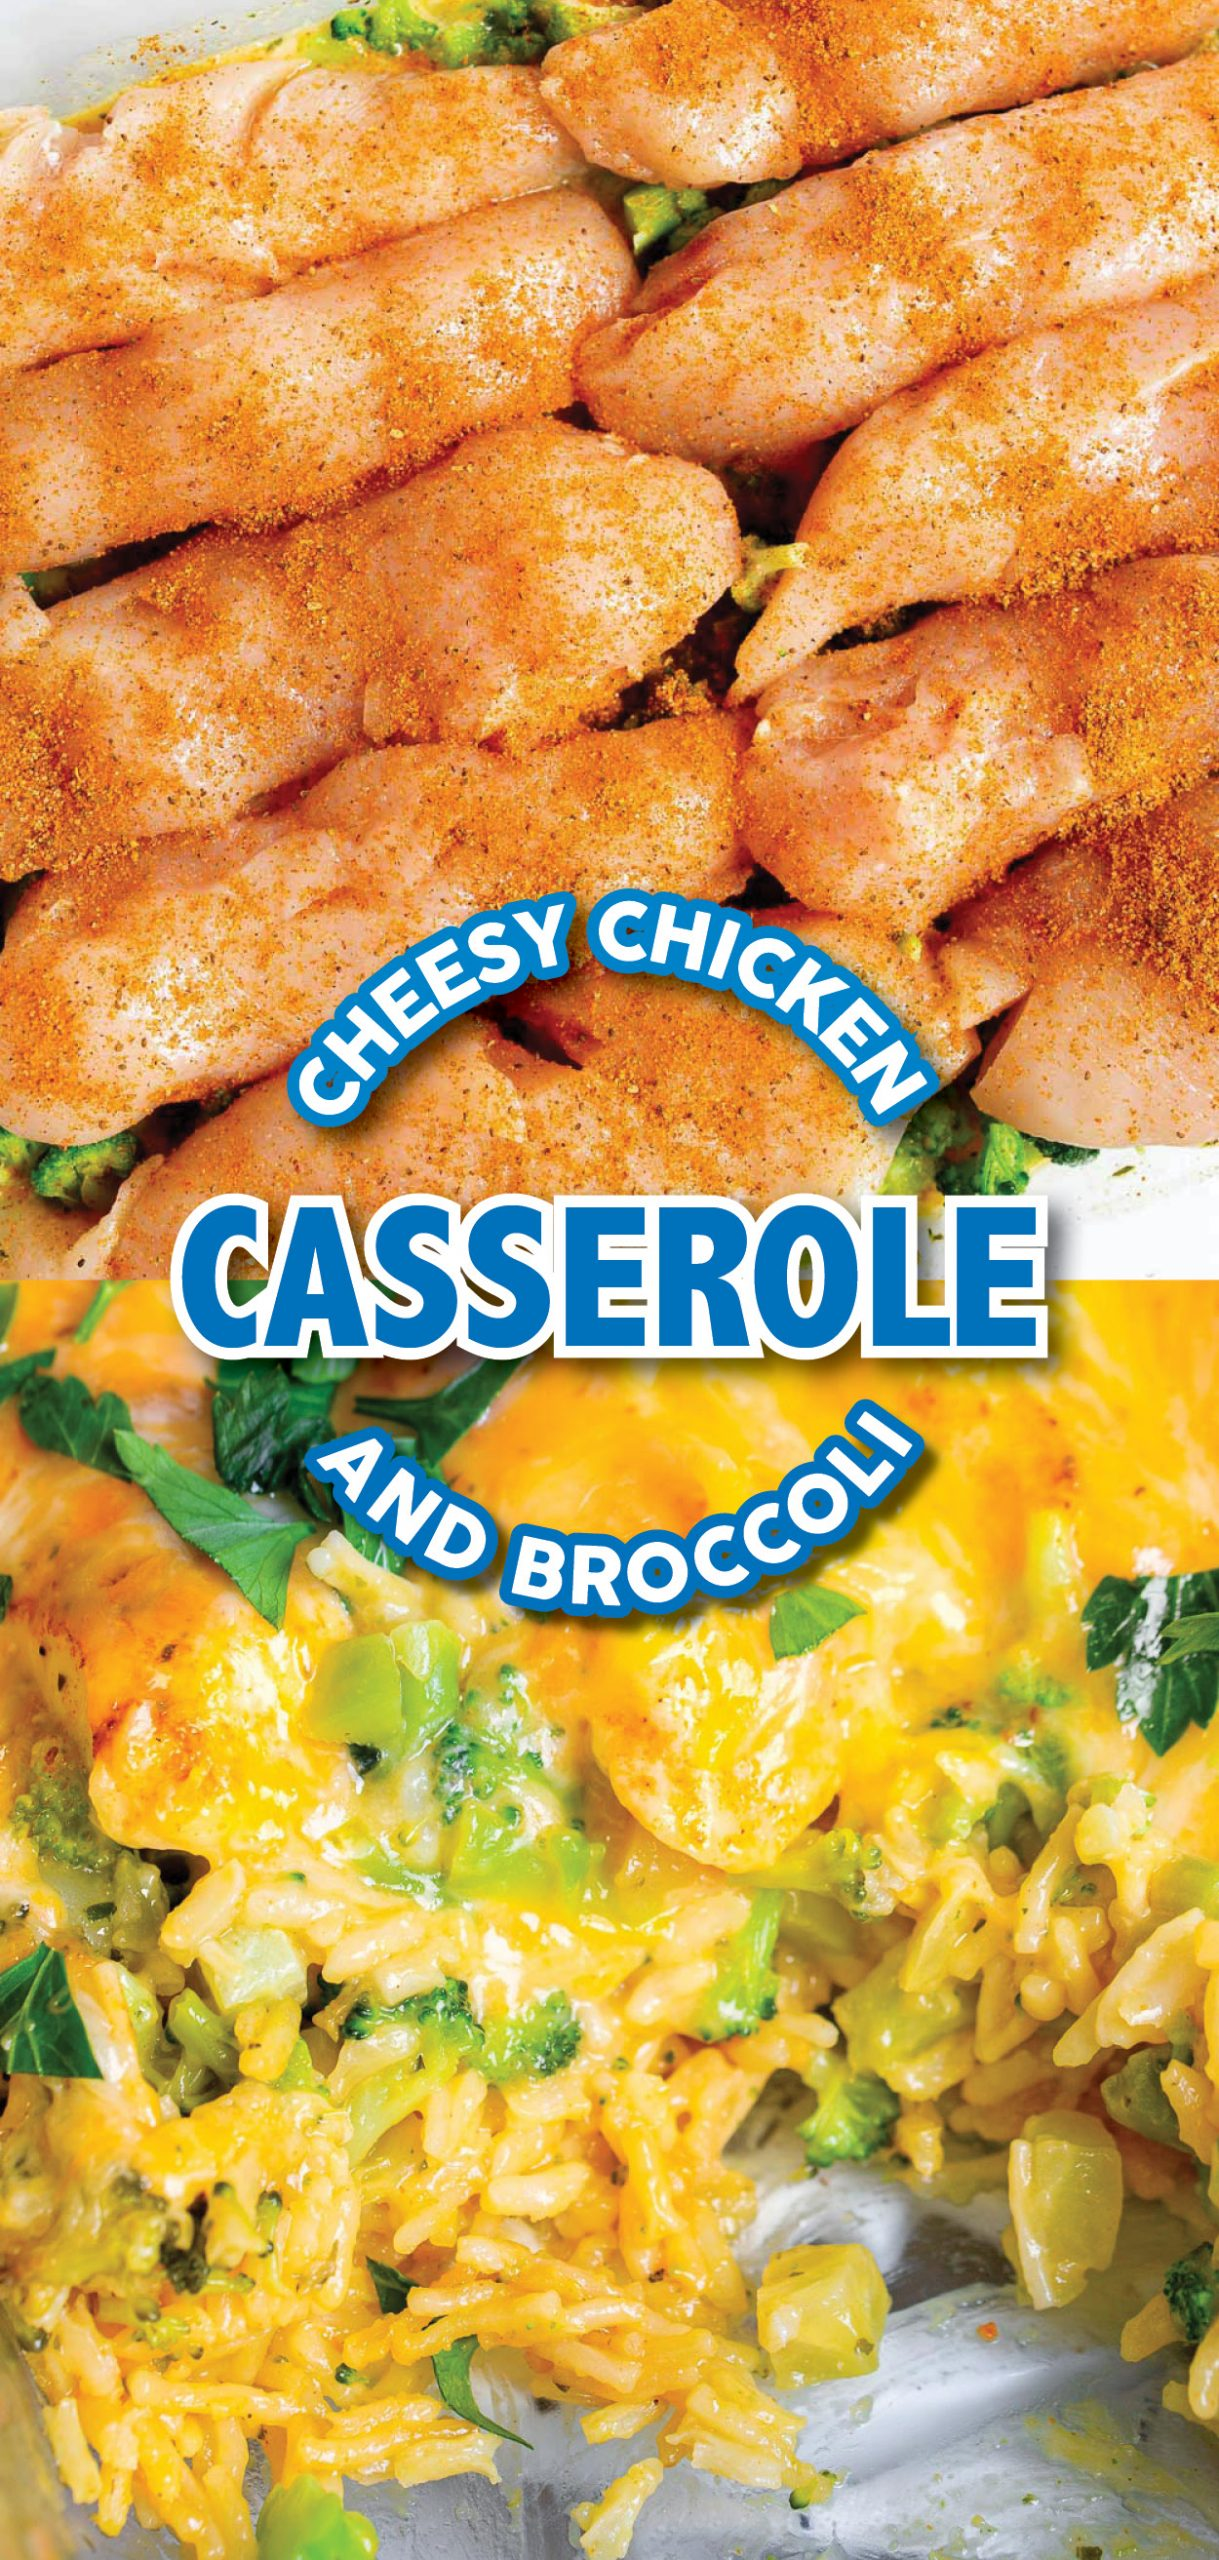 Whether you are looking for a delicious holiday side dish for Thanksgiving or Christmasor a quick and easy weeknight crowd-pleaser, this comforting casserole recipe is for you!